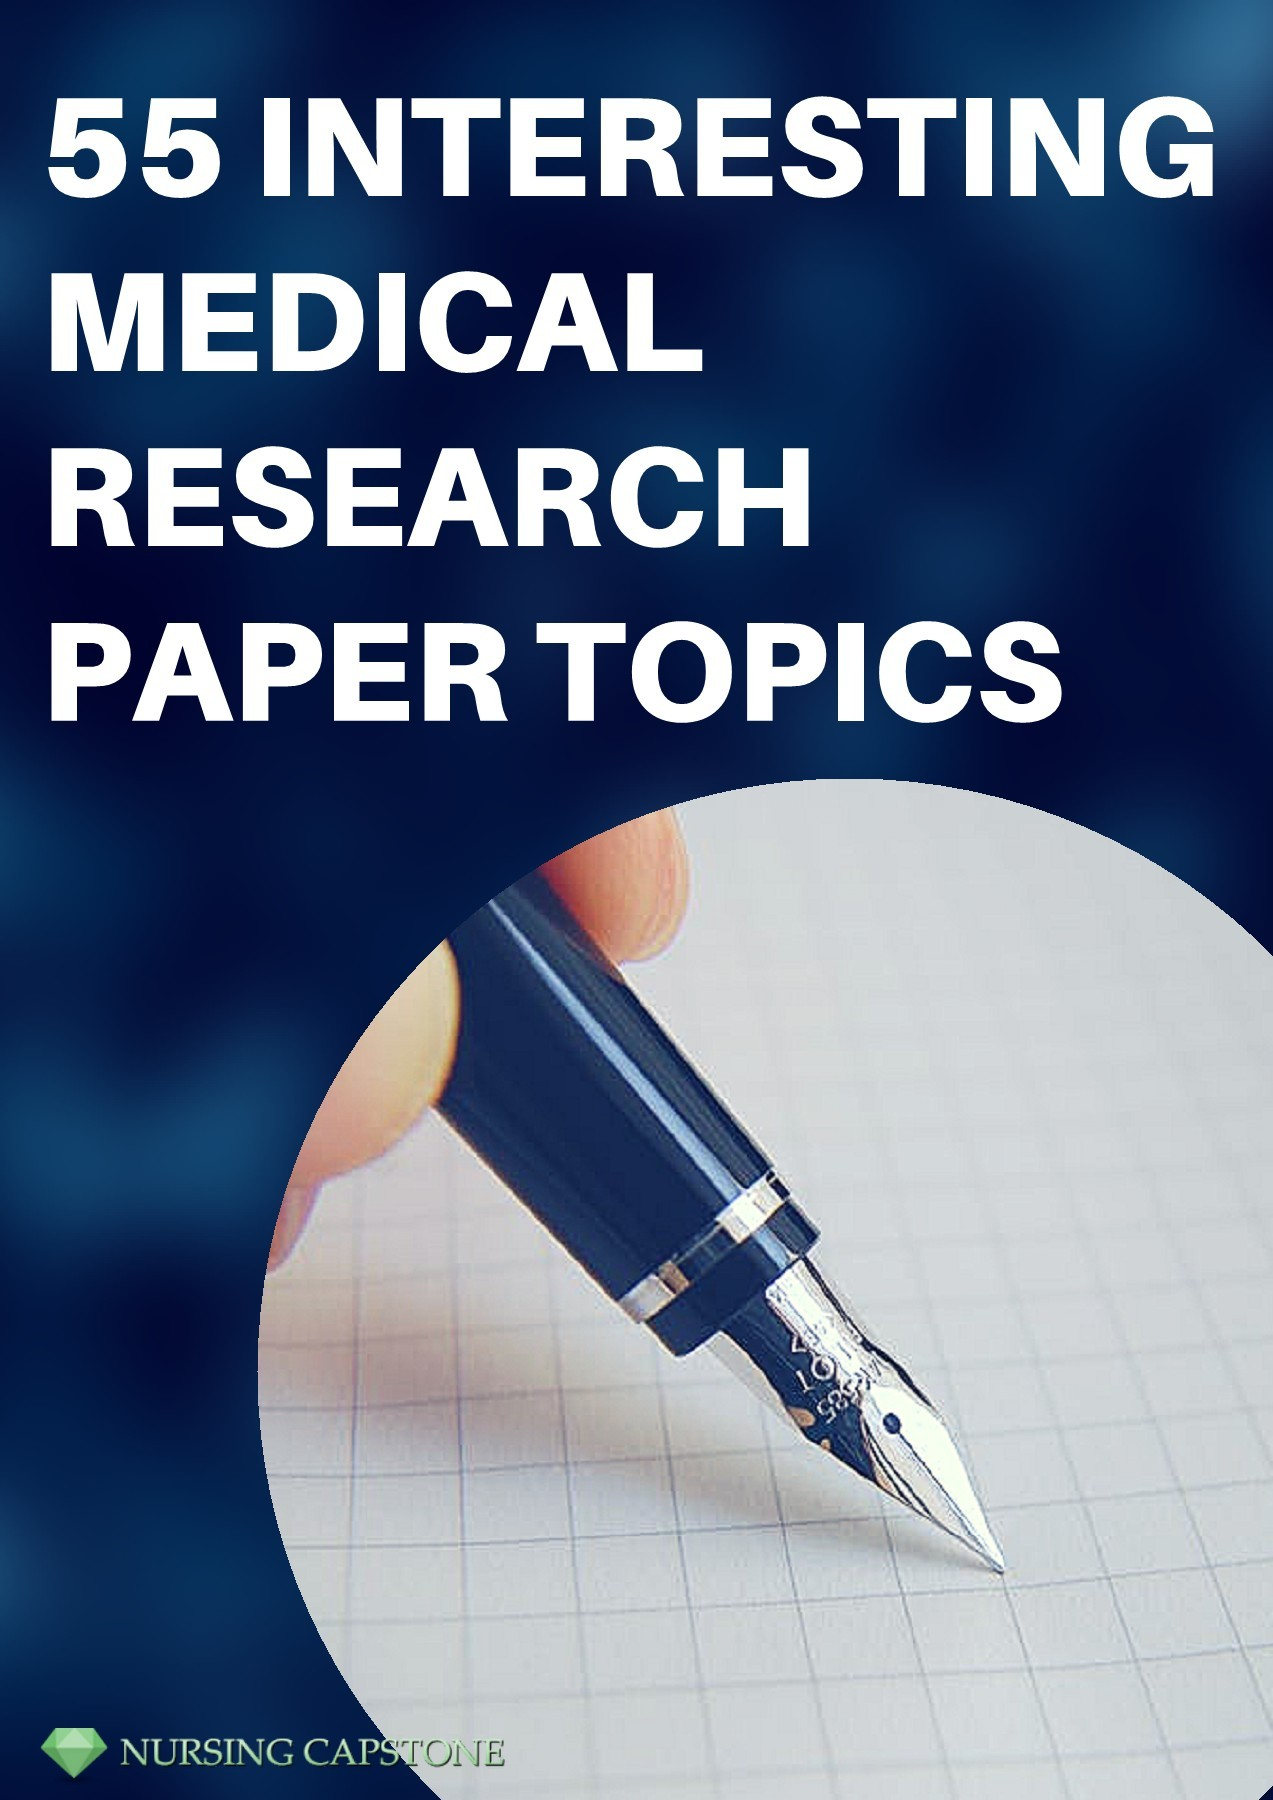 011 Medical Research Paper Topics For College Students Imposing Full